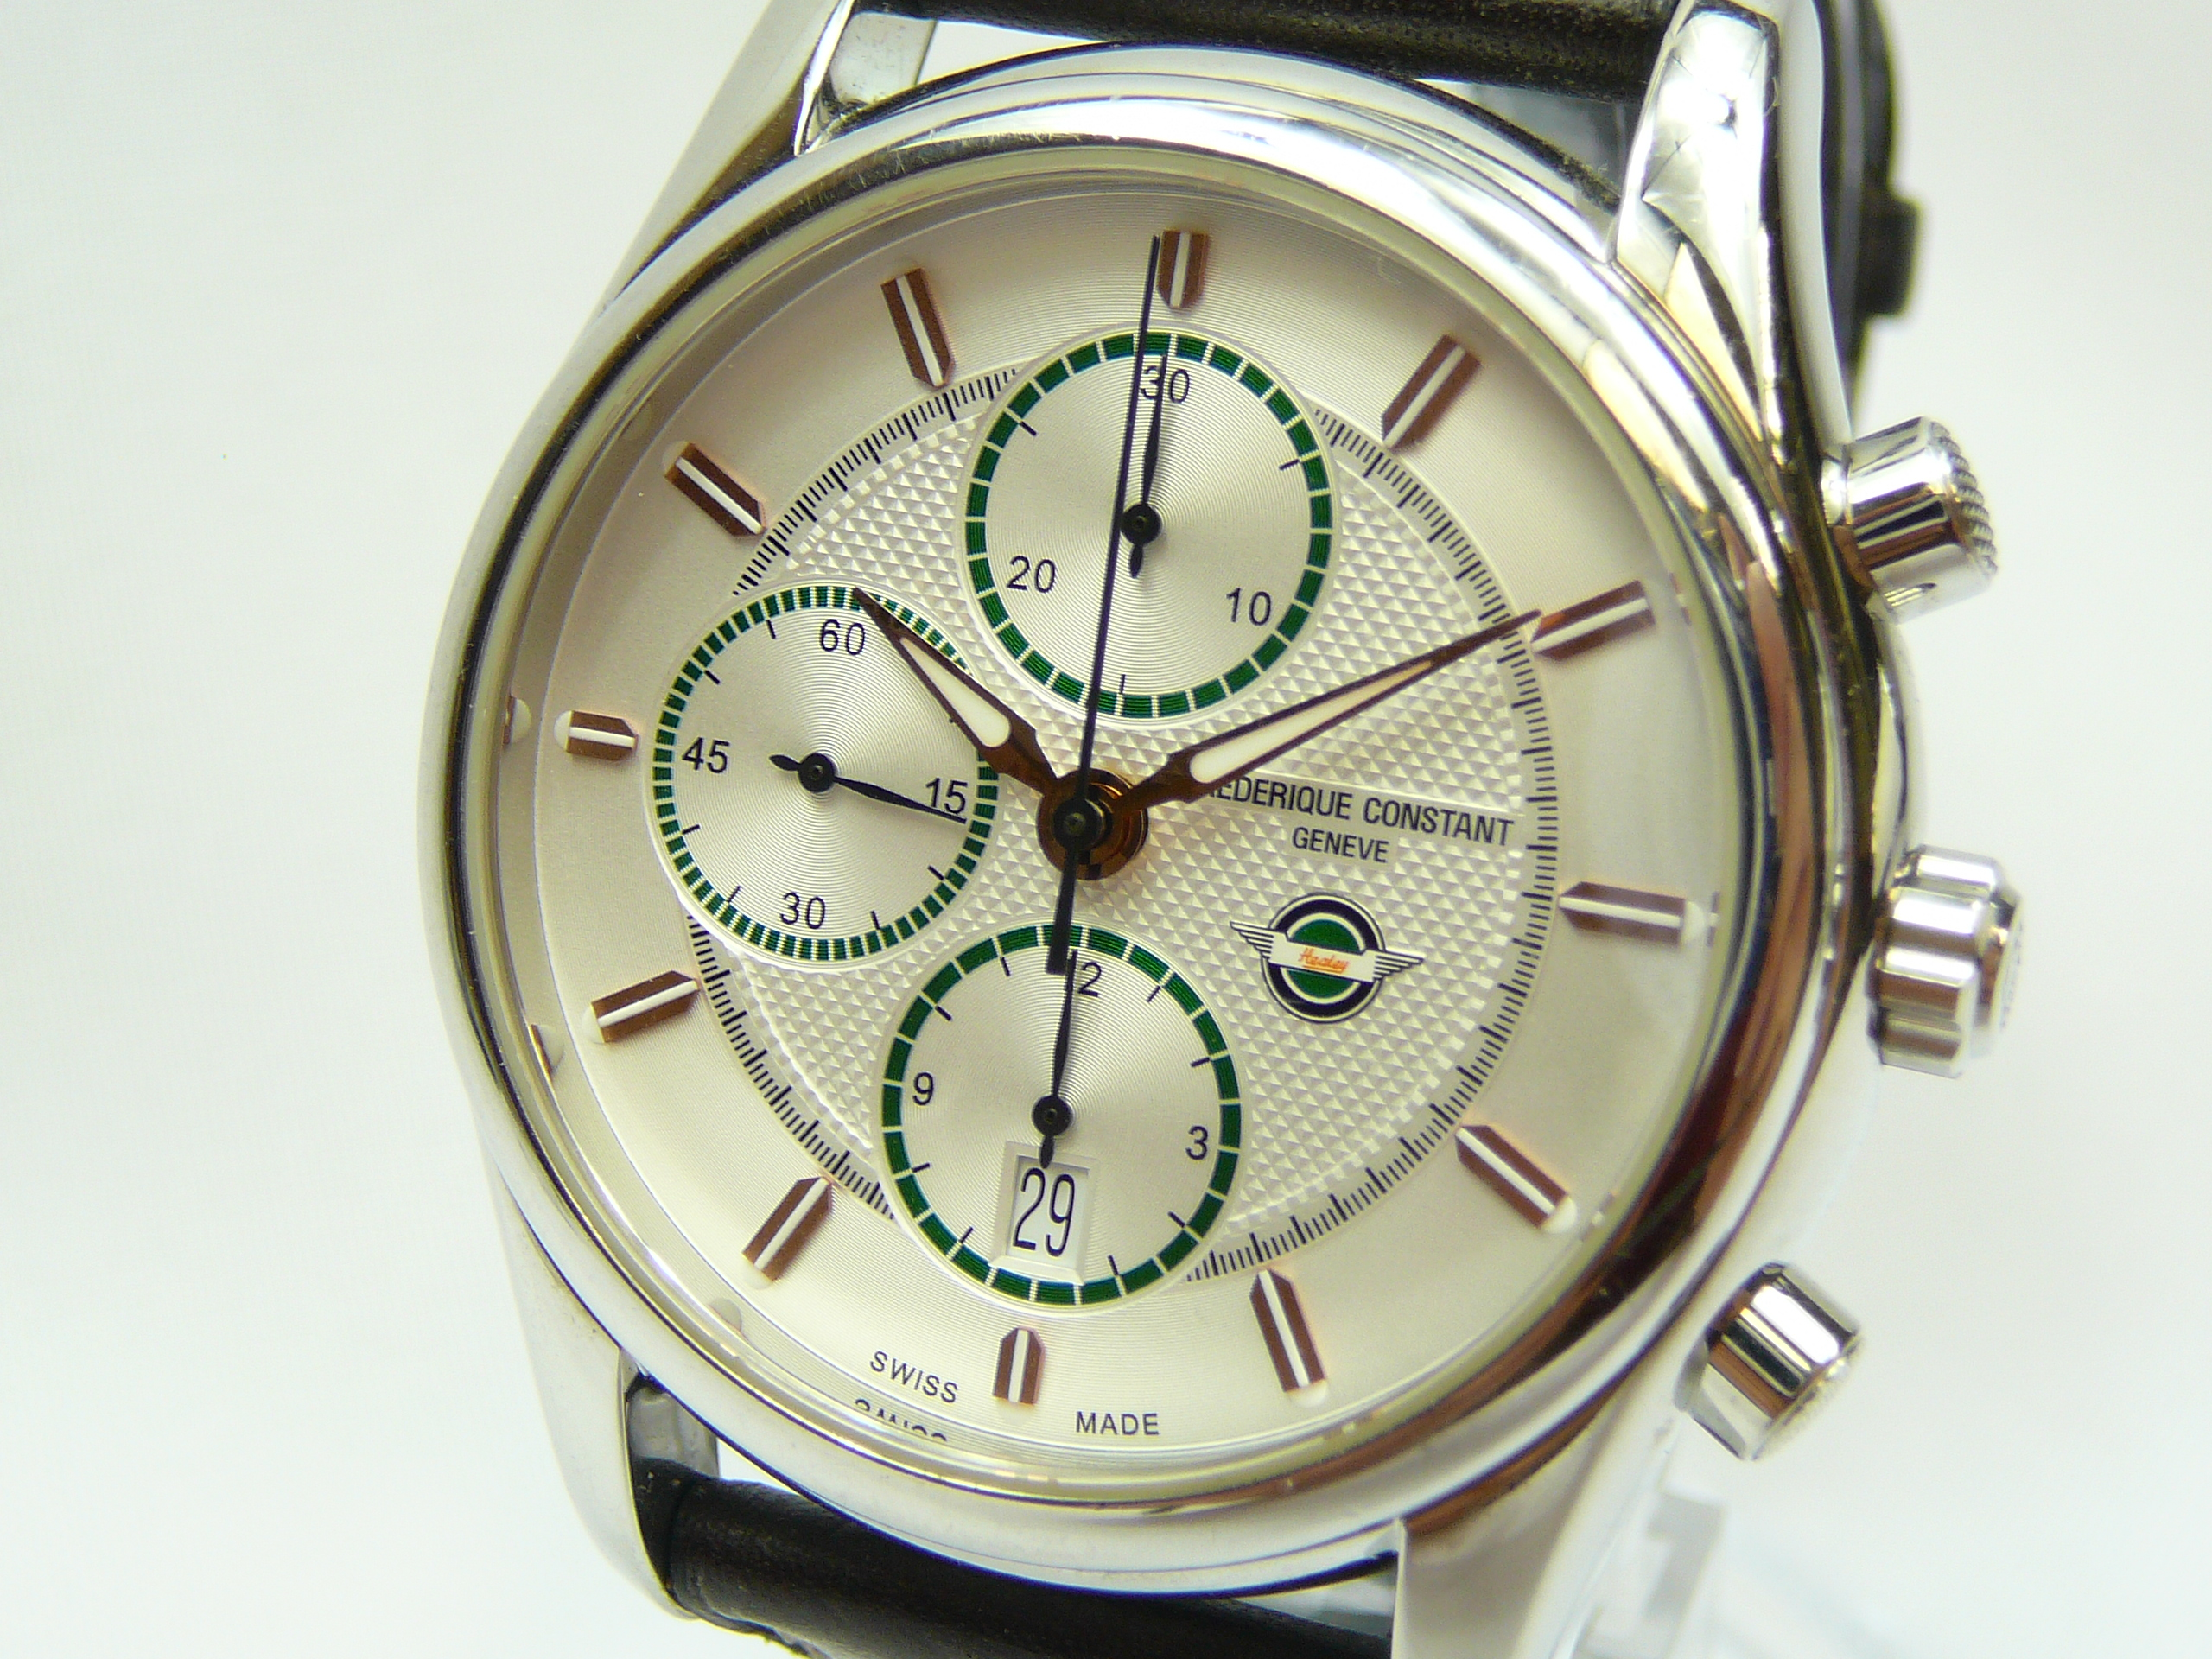 Gents Frederique Constant Wrist Watch - Image 2 of 4